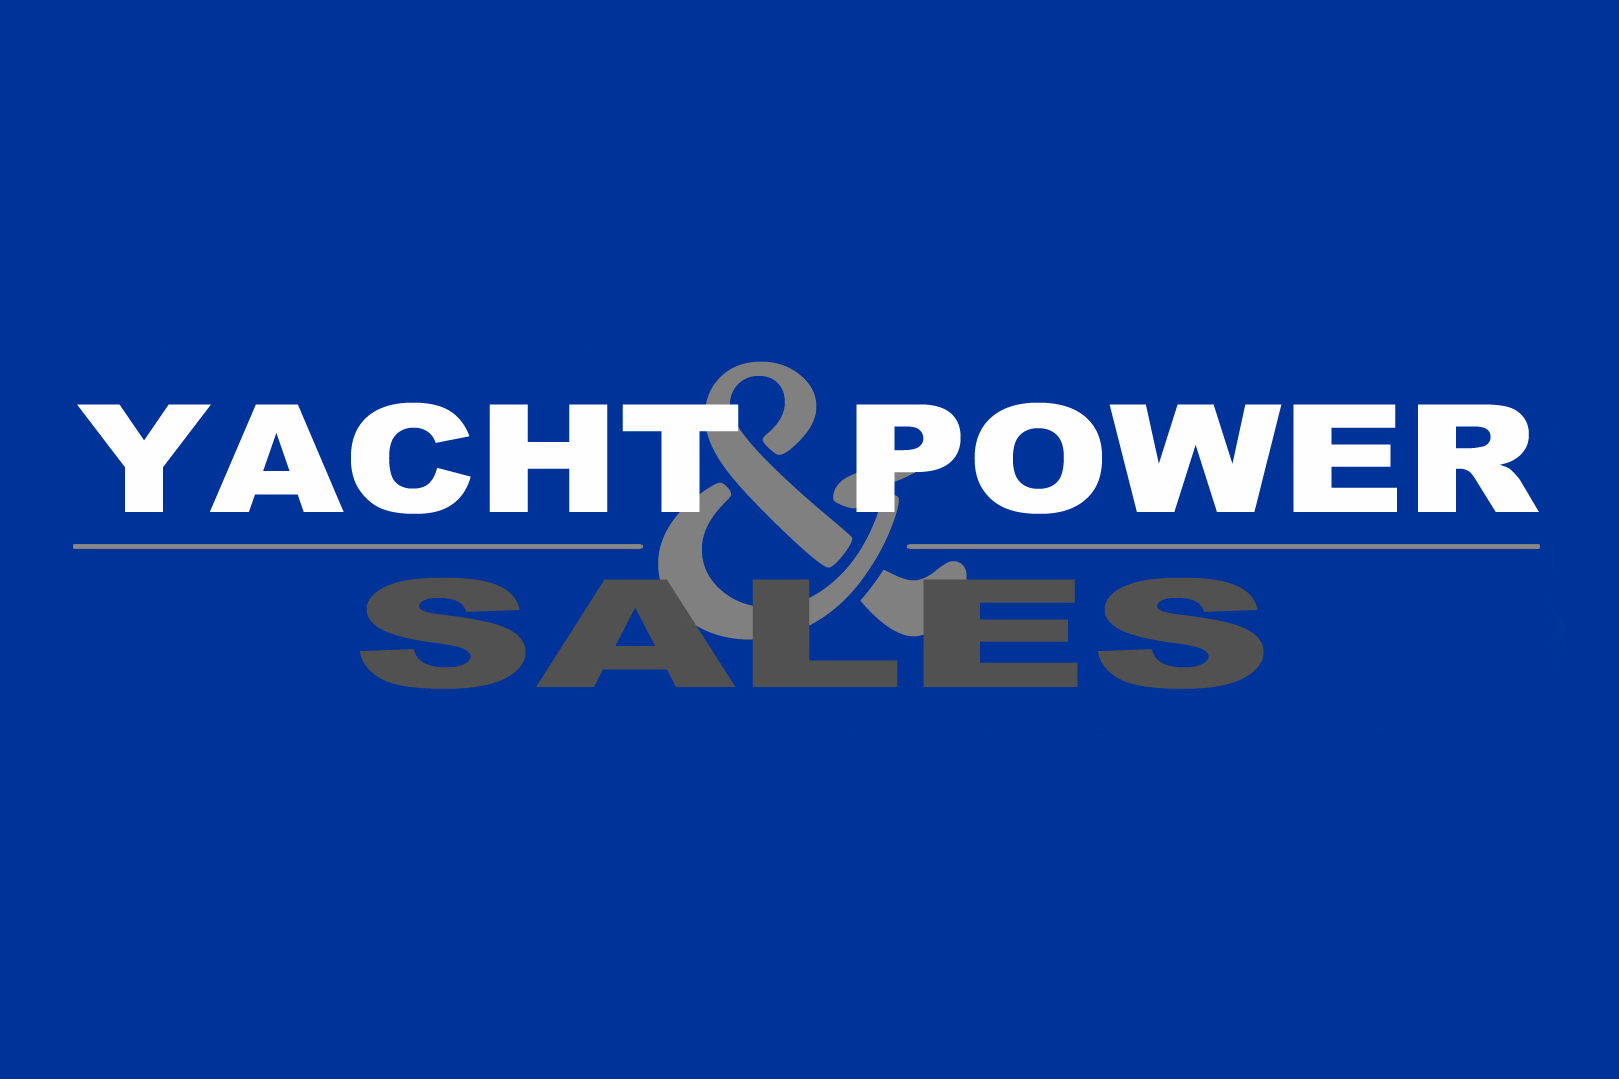 Yacht and Power Sales 4x6